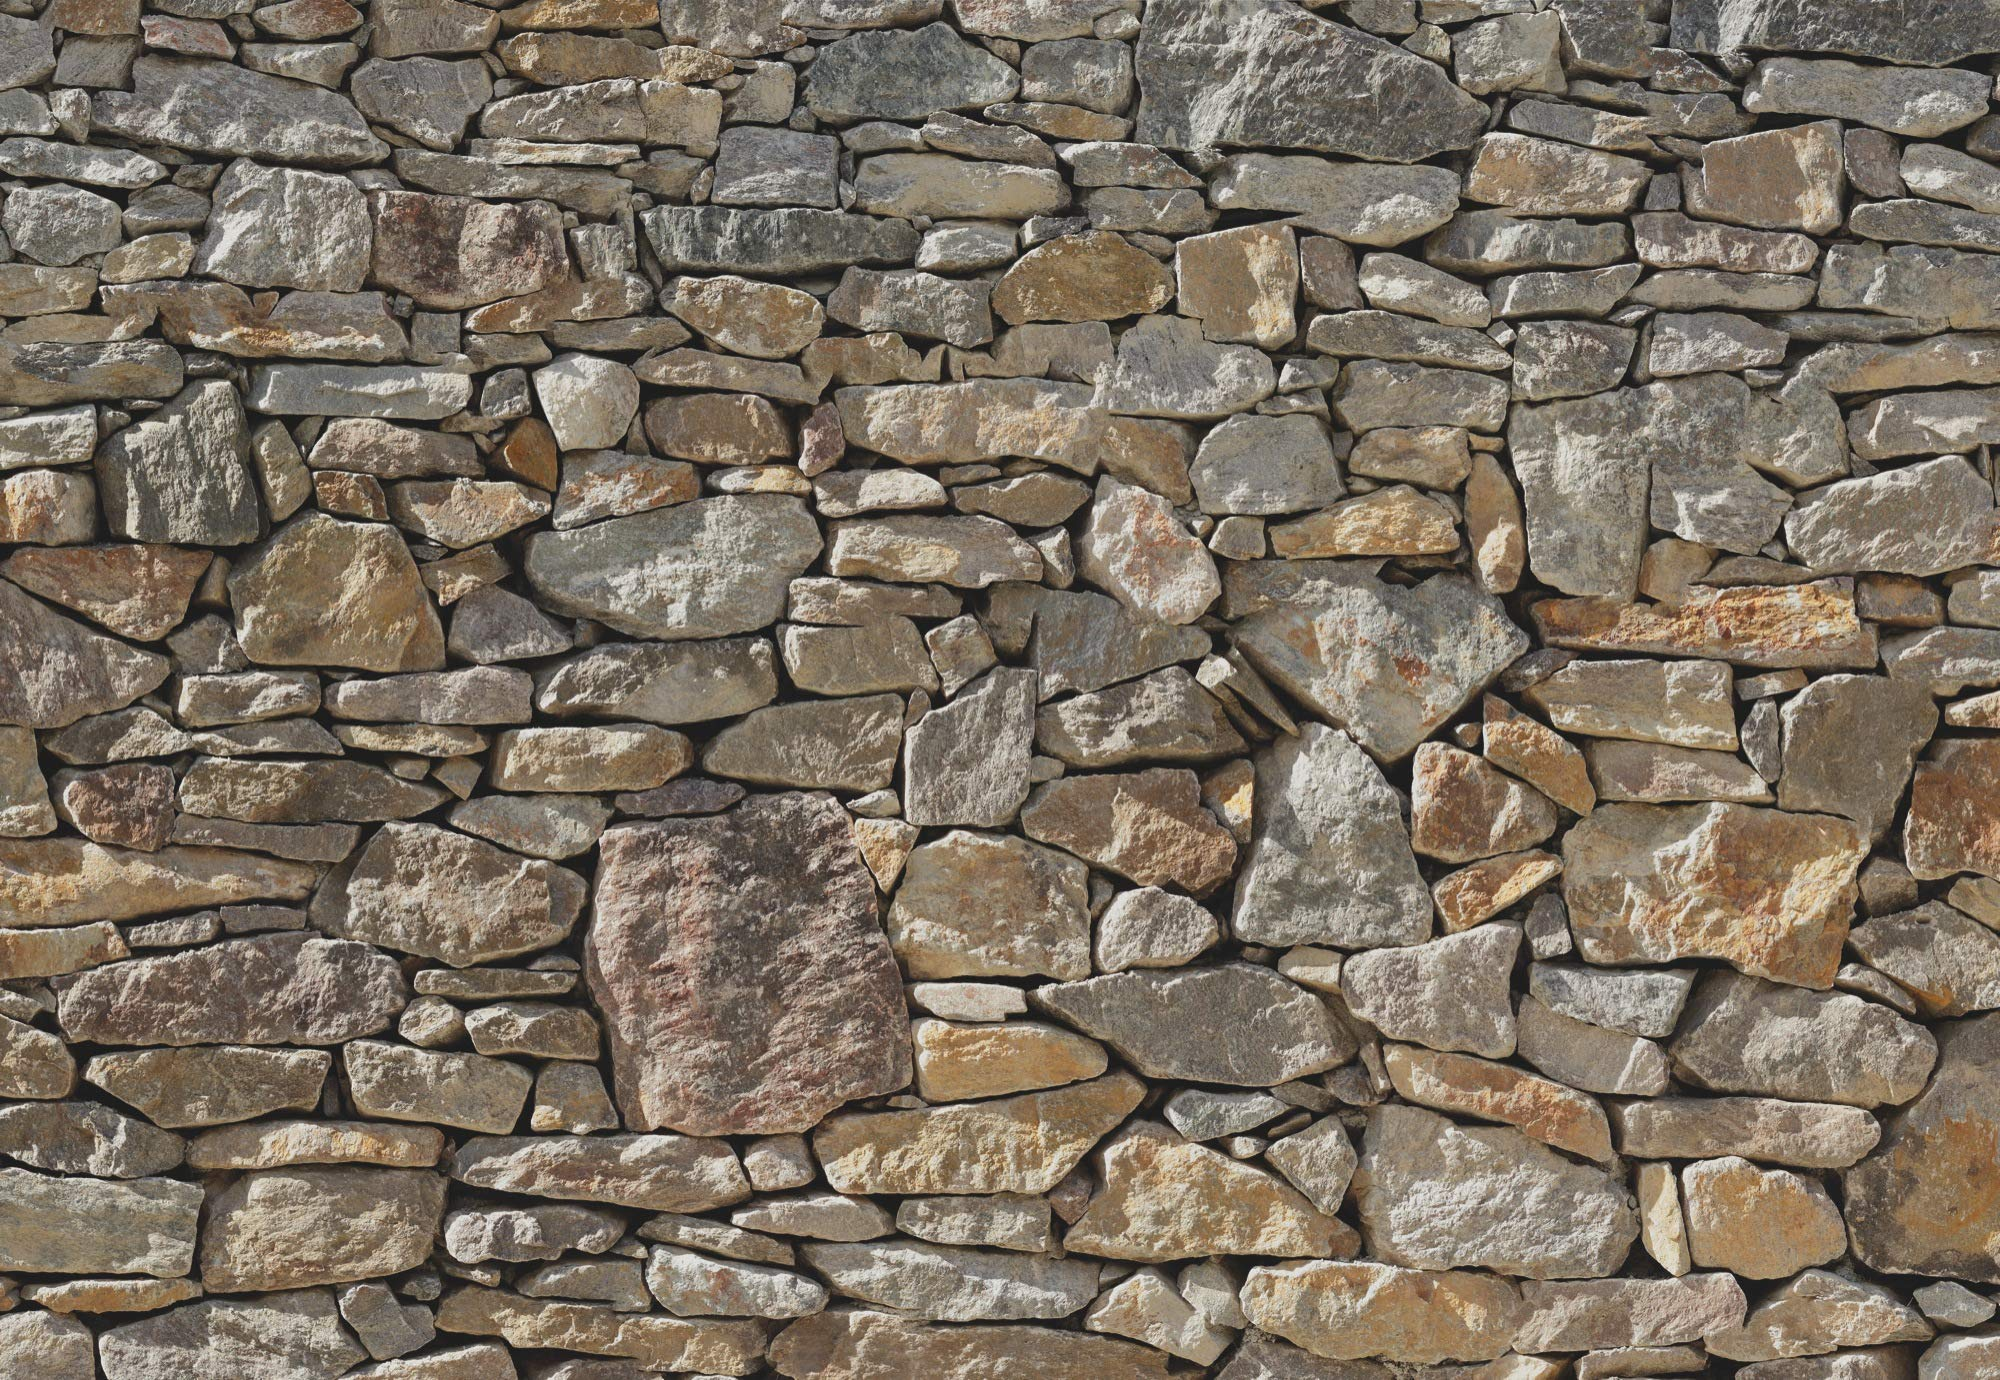 Stone Wall Huge Wall Mural 8-727 by Komar 12 Feet Wide x 8 Feet 4 Inch High Photo Mural by Brewster (Image #2)